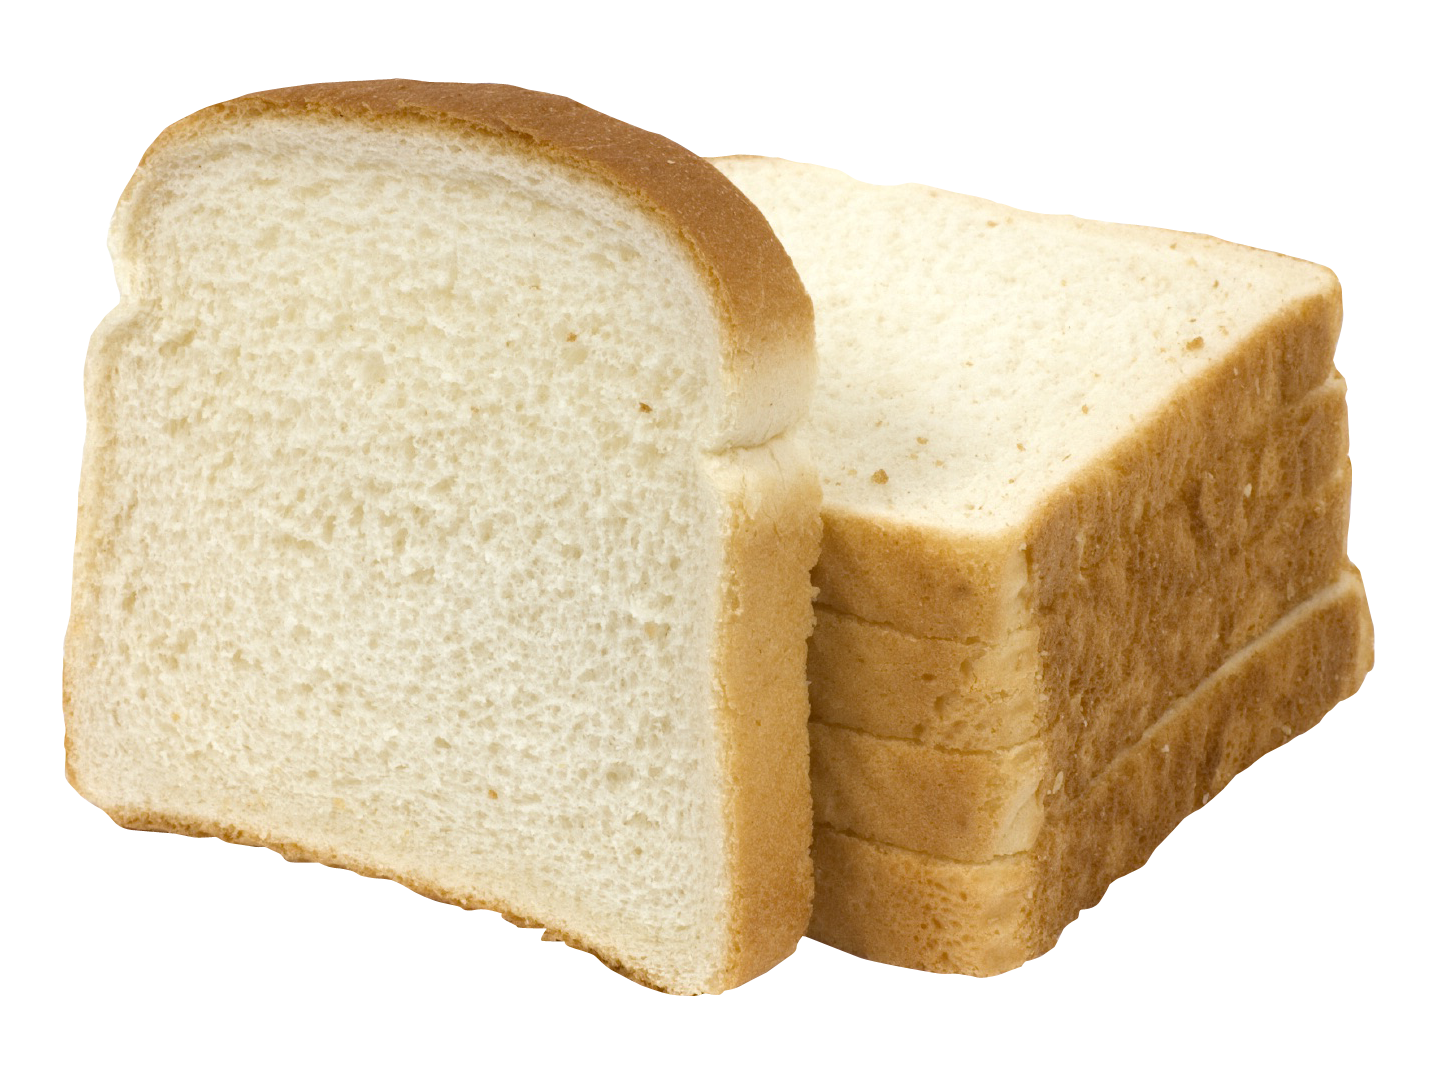 picture library Image result for bread transparent background